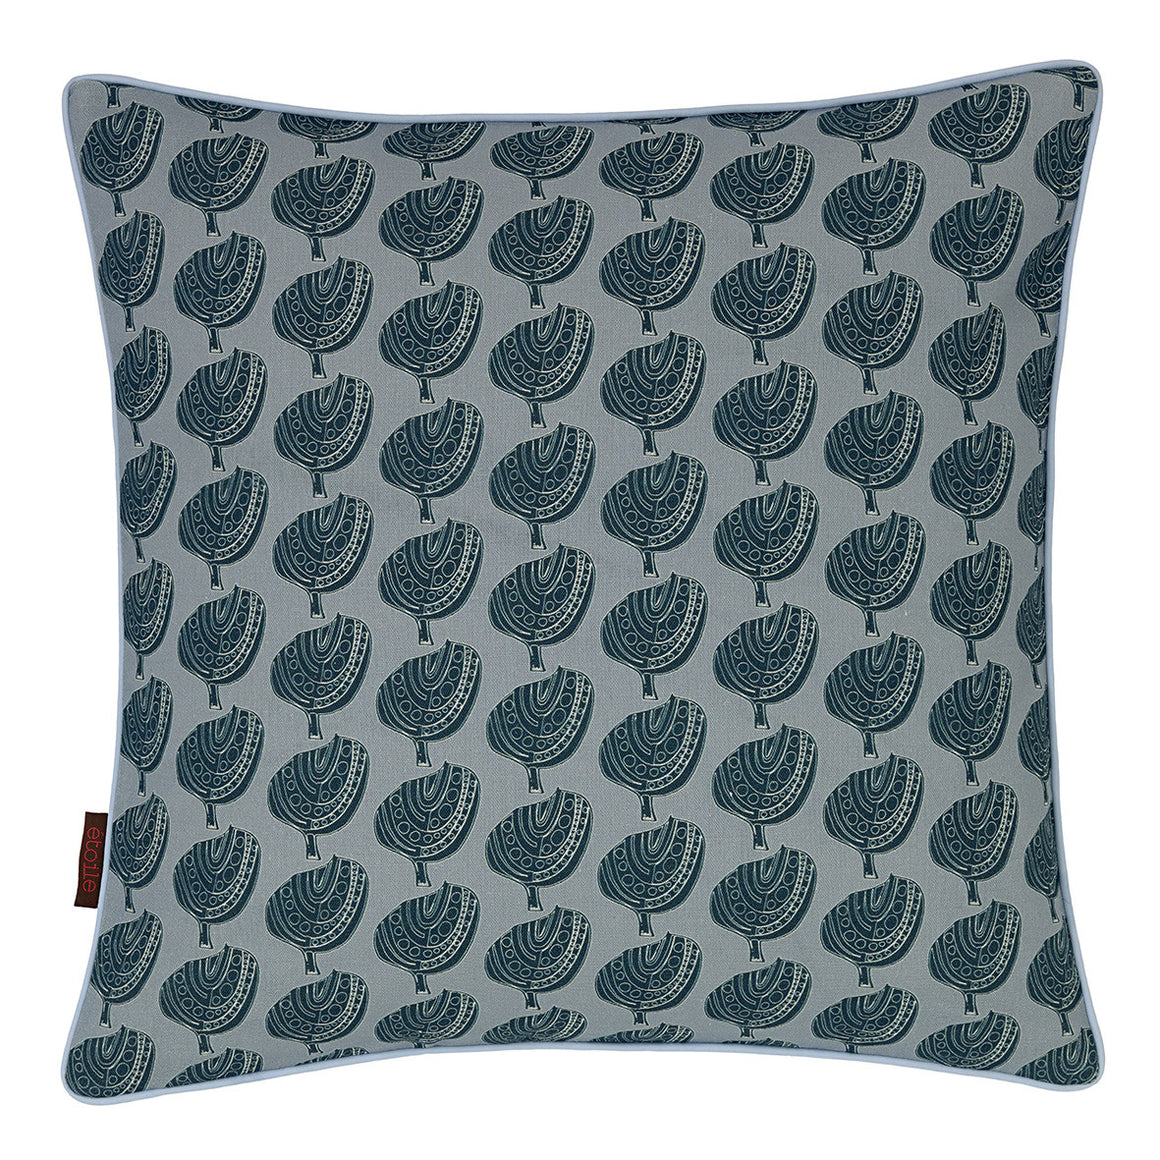 "Graphic Apple Tree Pattern Printed Linen Union decorative Throw Pillow in Light Winter Blue and Petrol Blue 45x45cm (18x18"")"